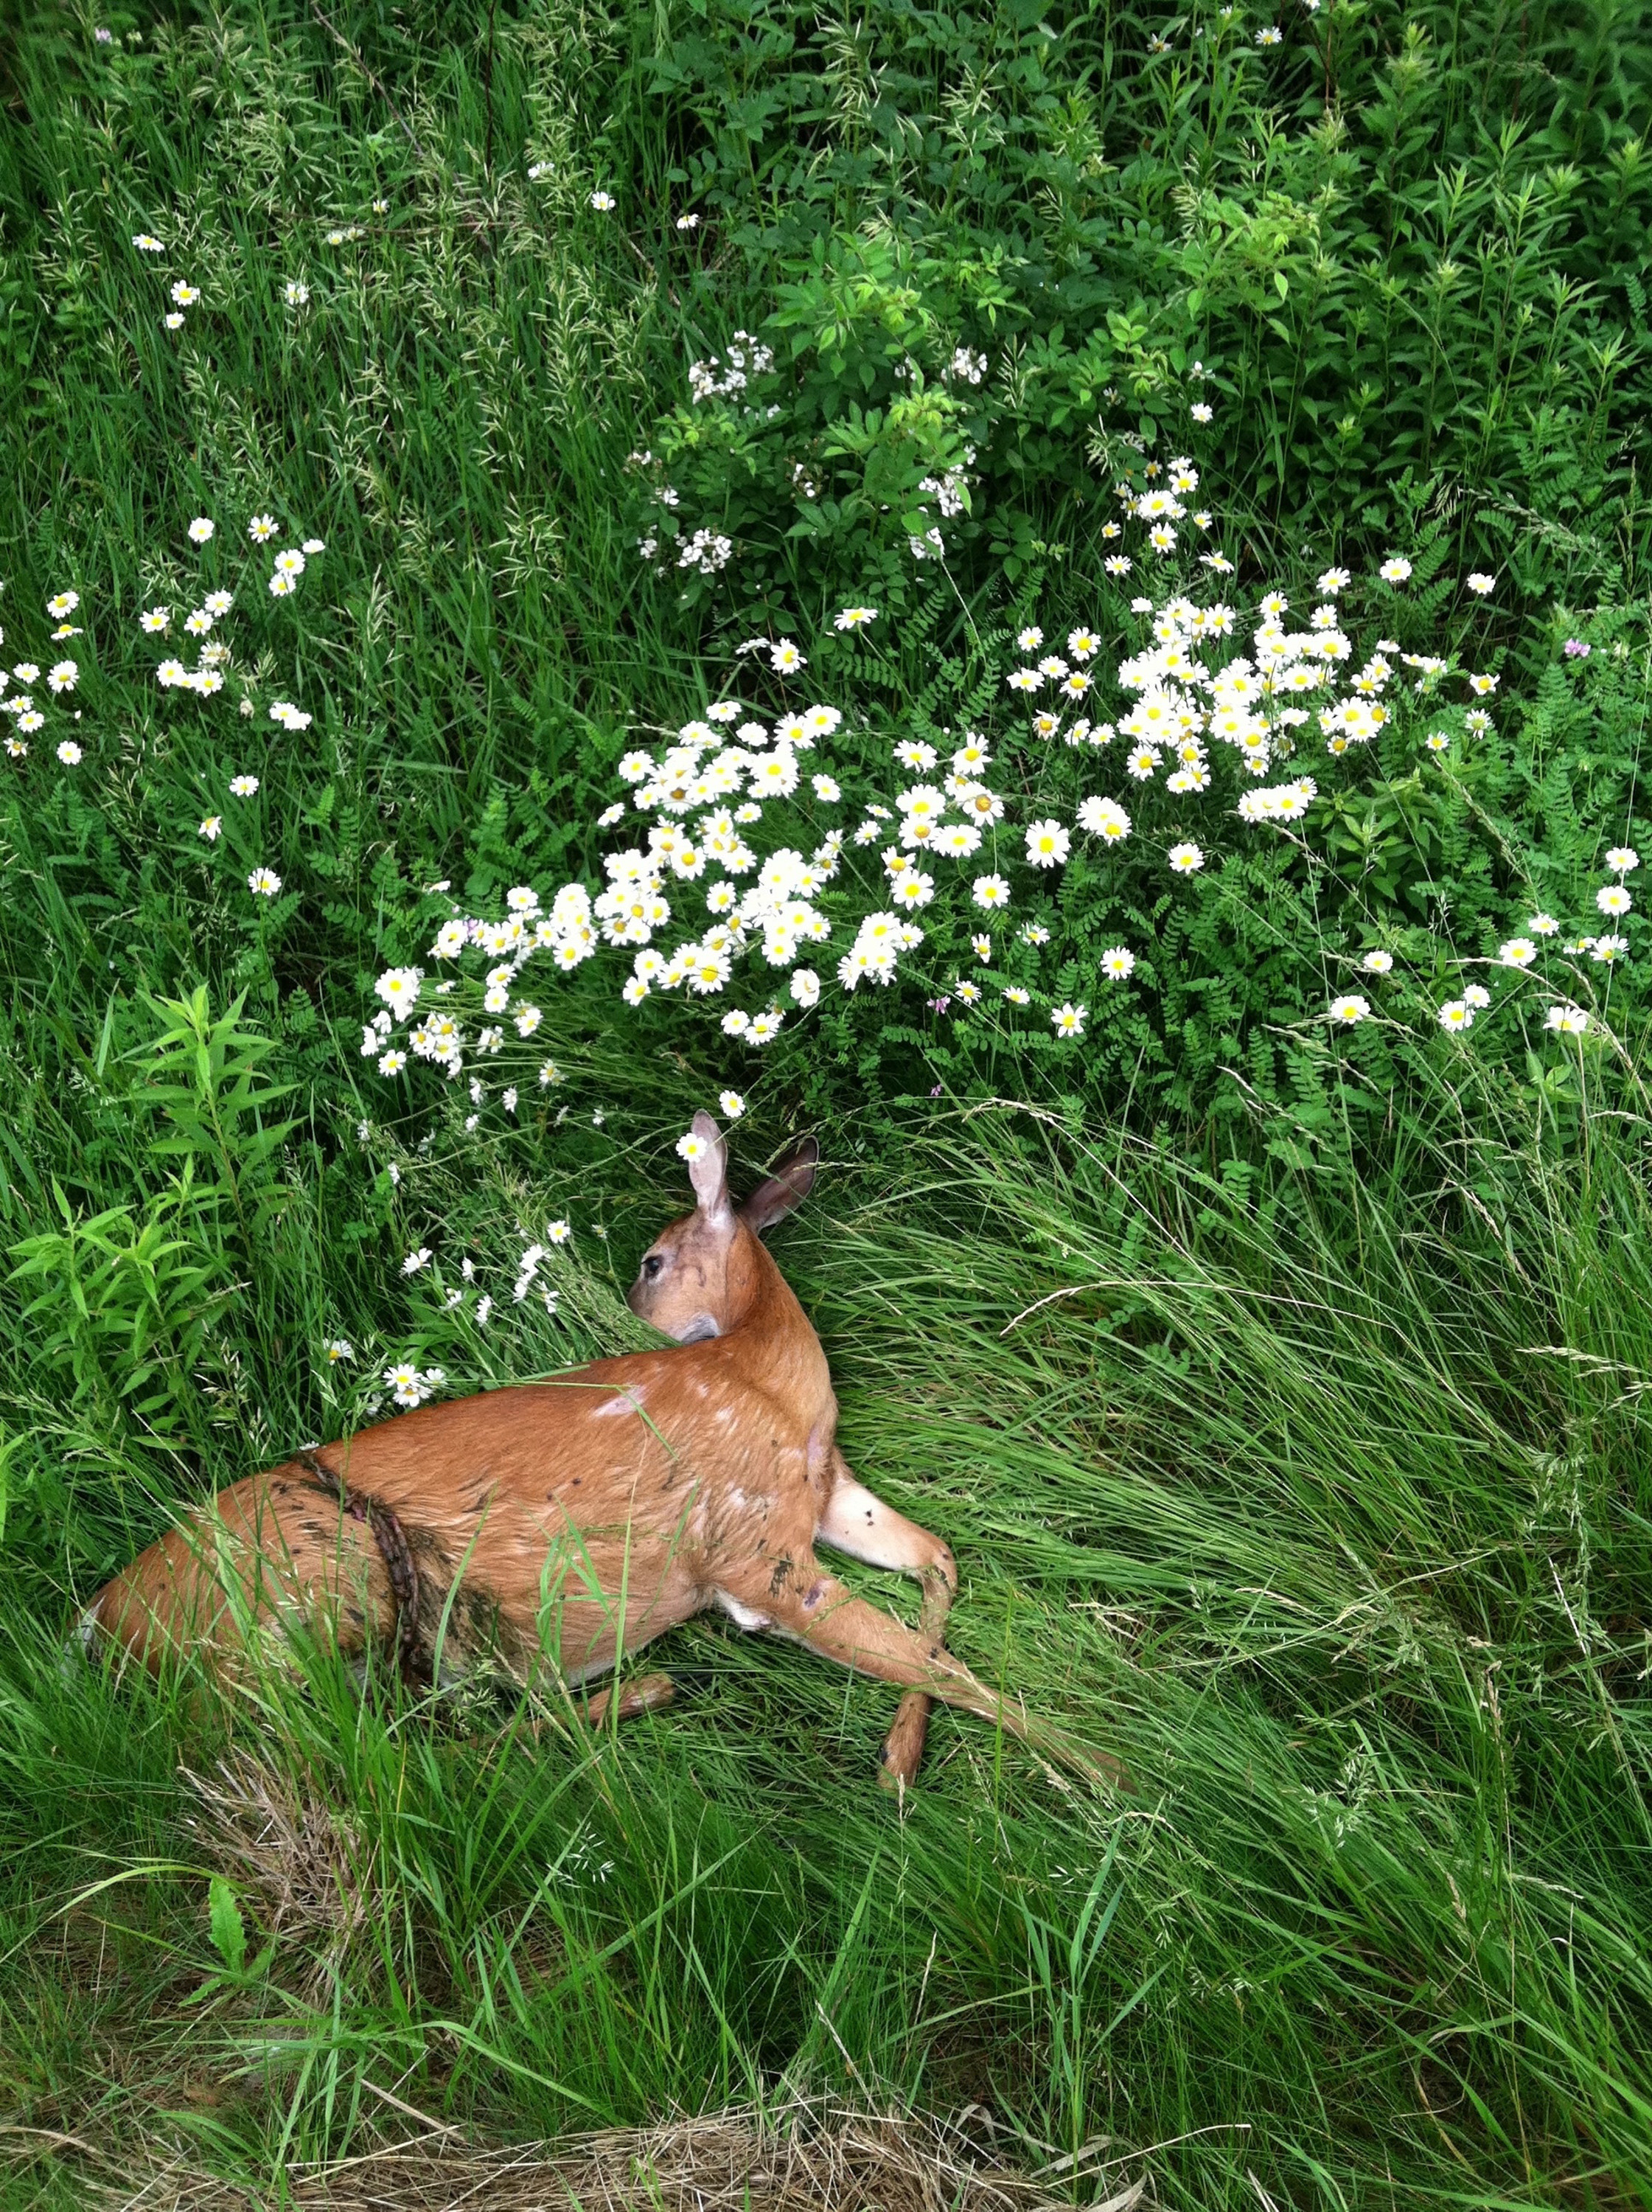 A deer lying in the grass with white wildflowers